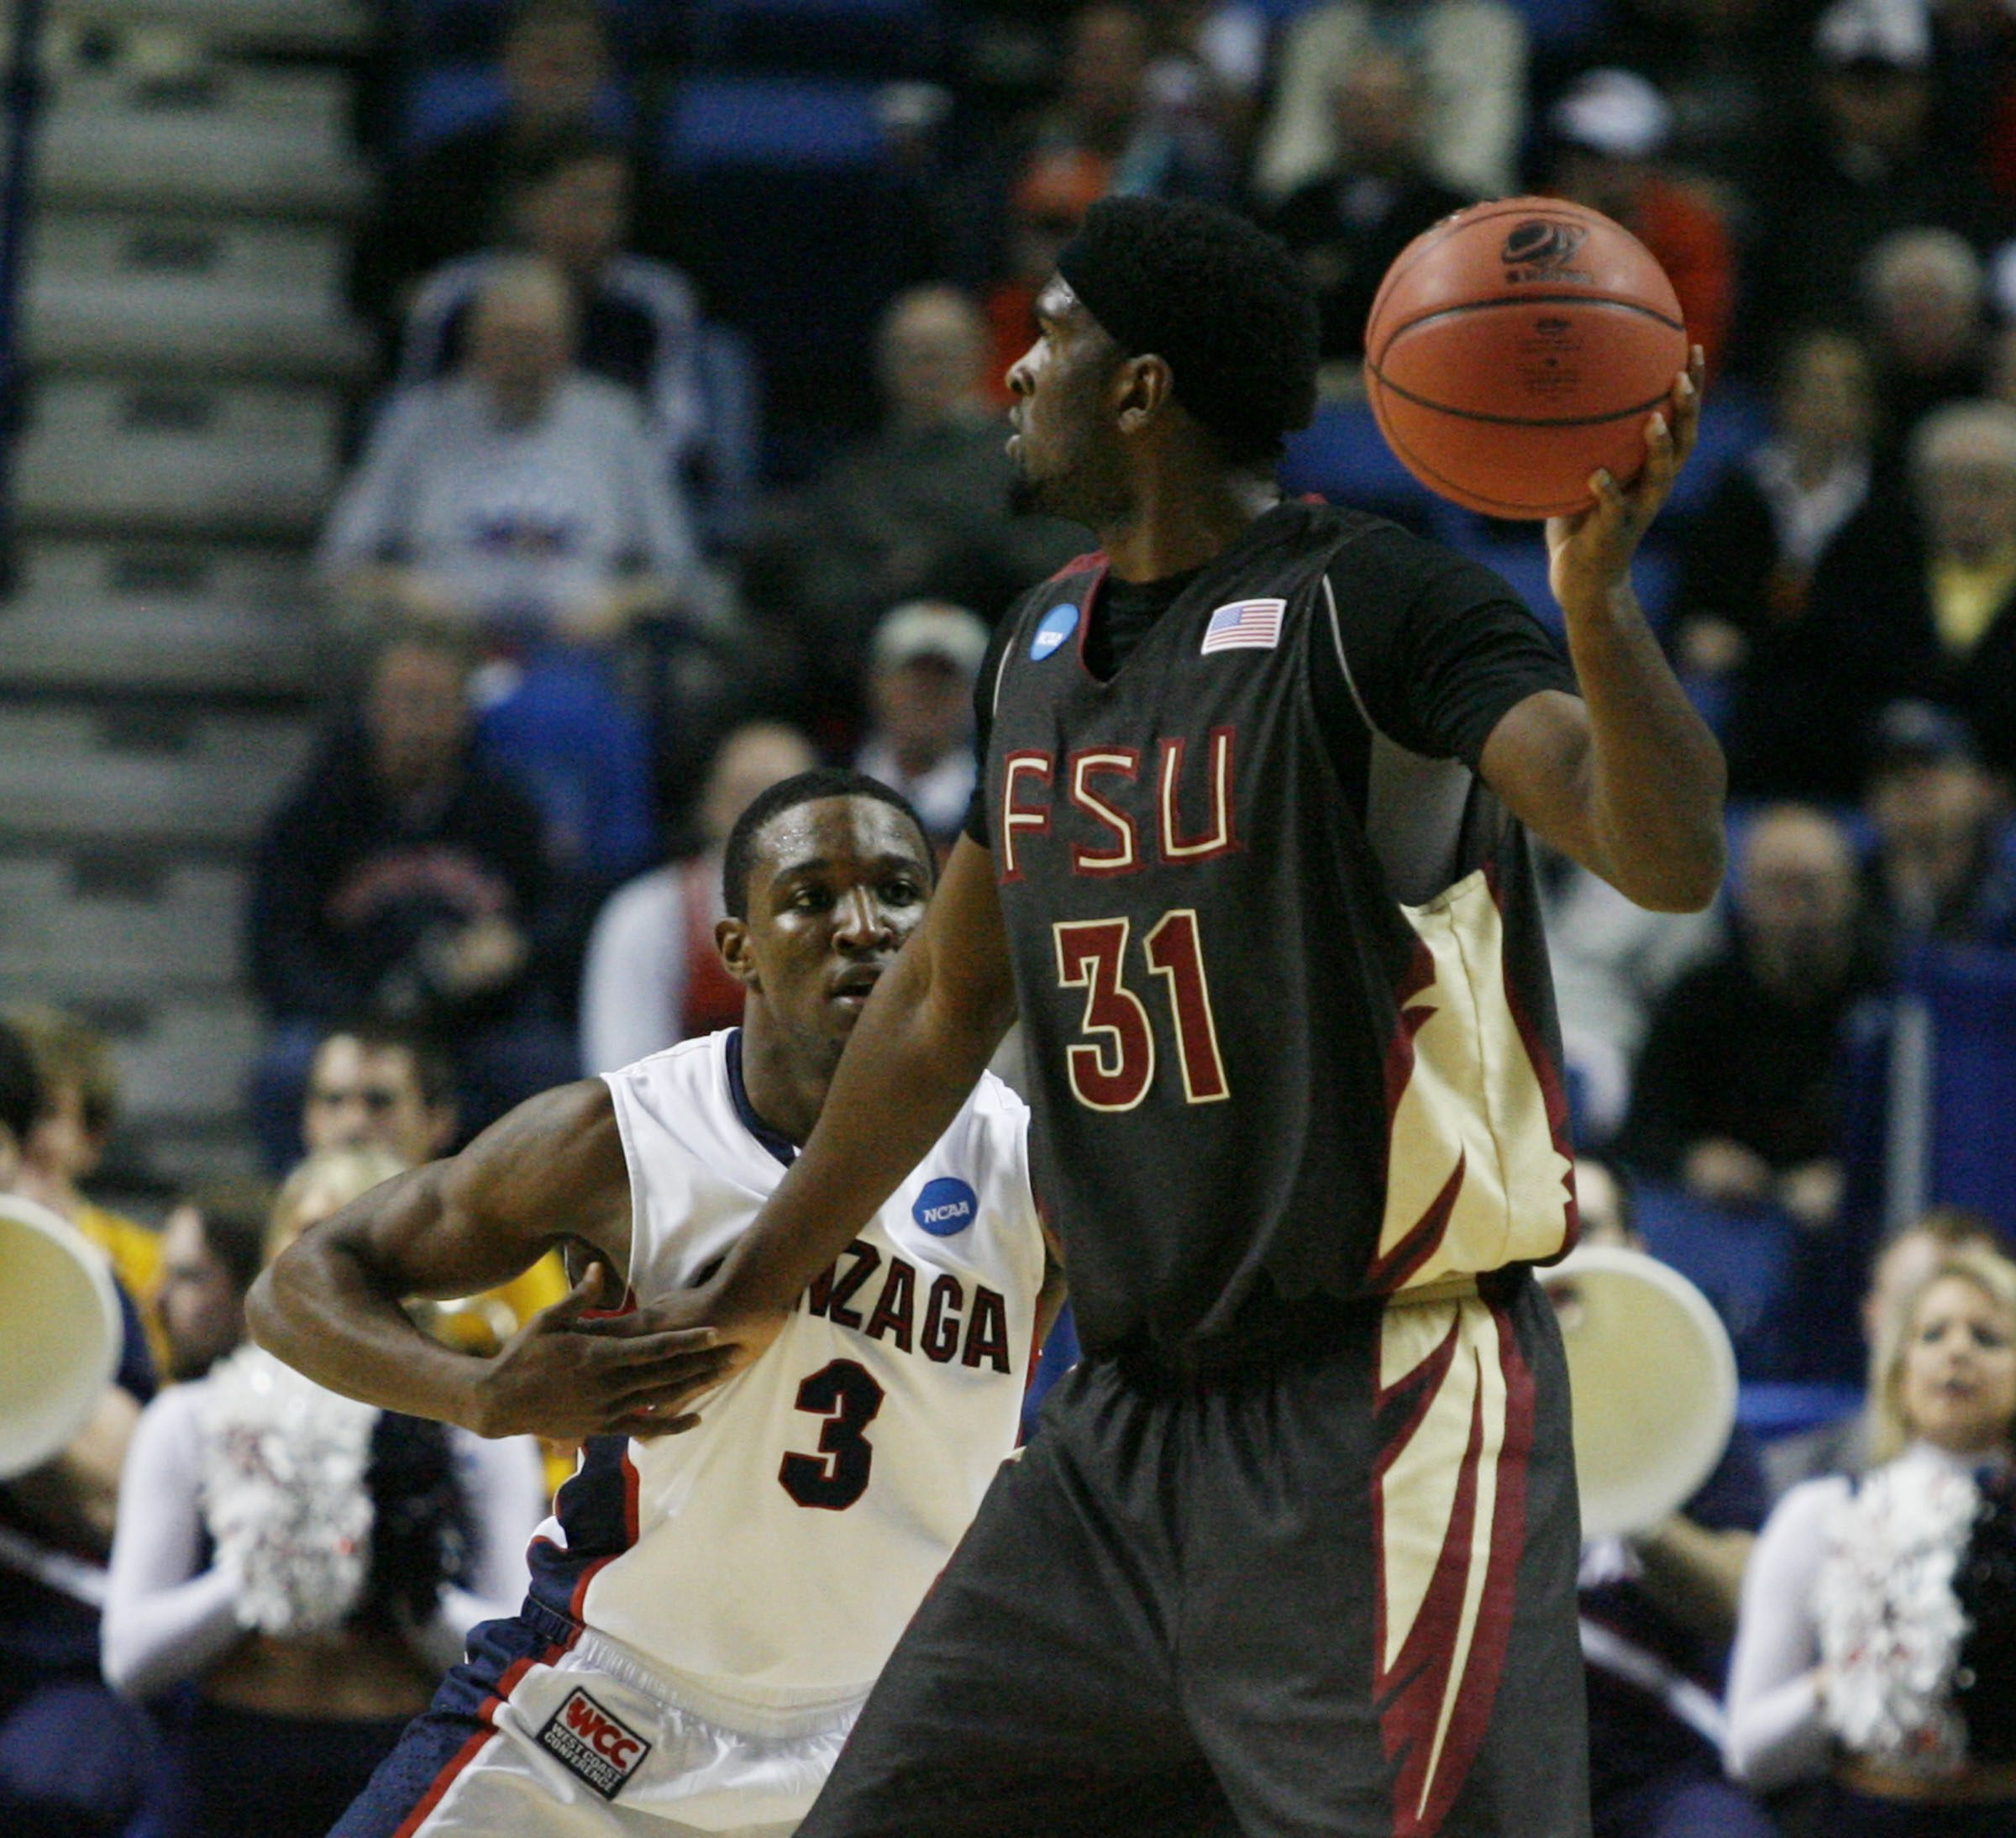 Gonzaga guard Demetri Goodson and the Zags kept Florida State at bay.  (James P. McCoy/Buffalo News)